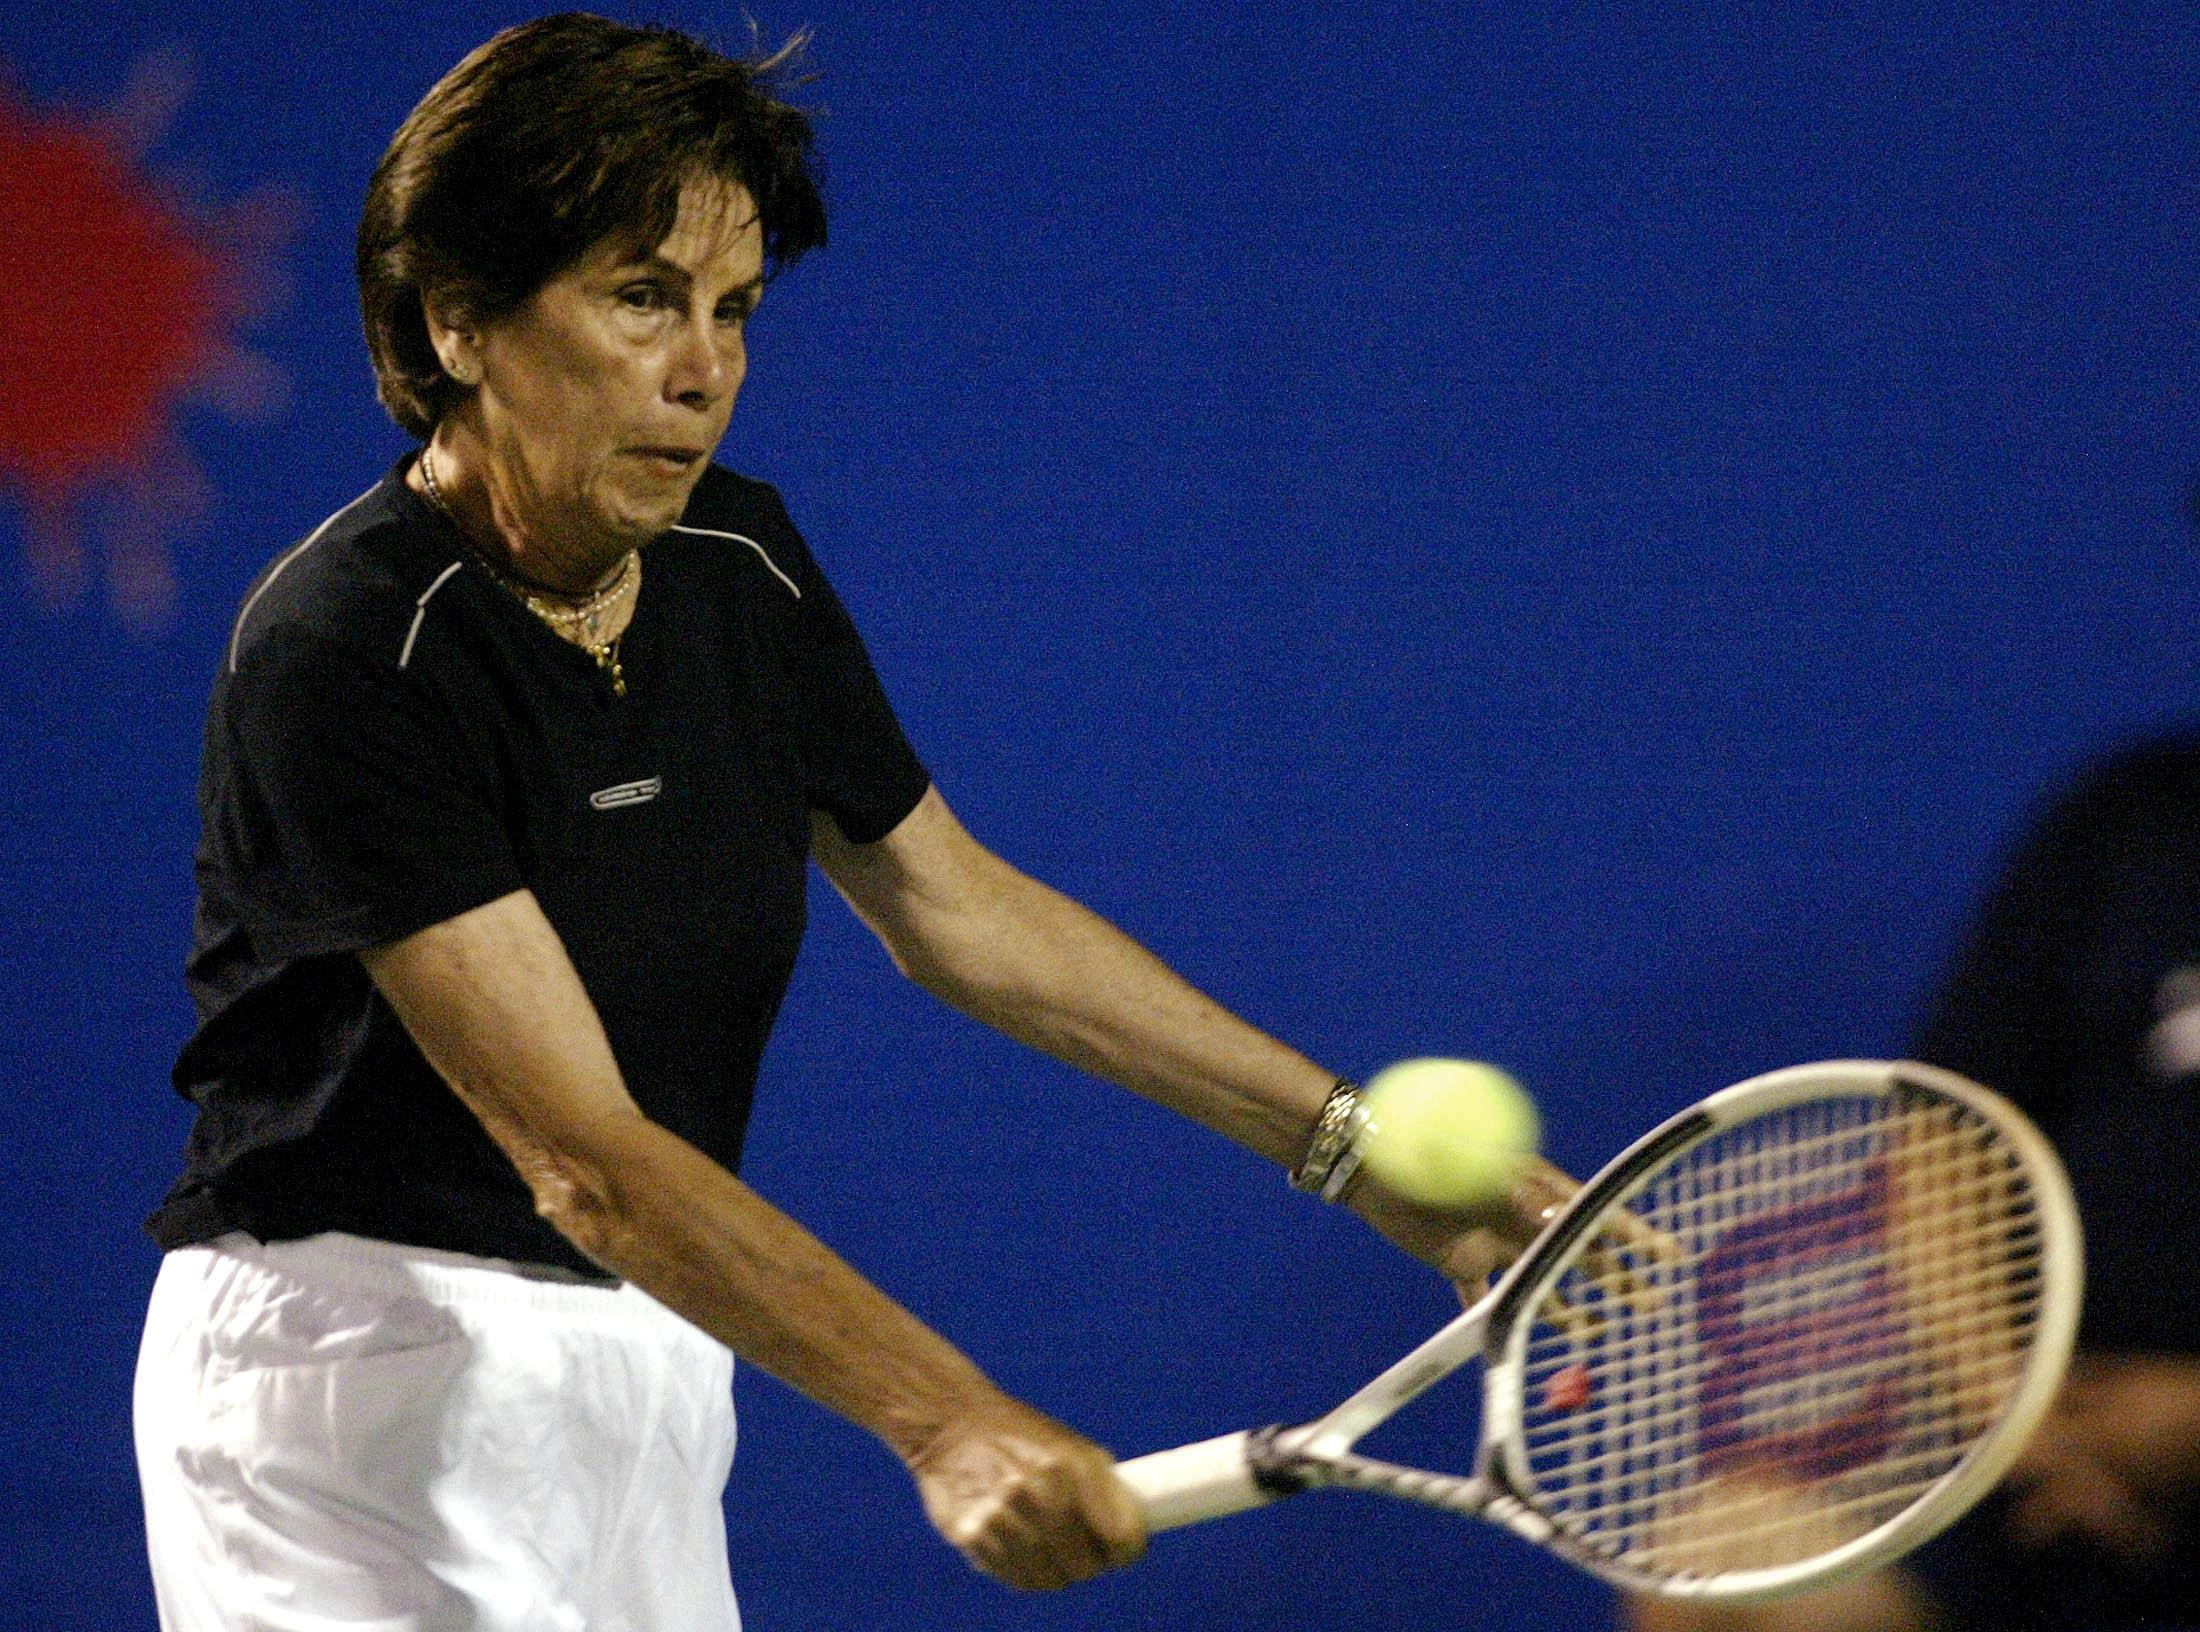 Bueno was a national hero in Brazil and continued to play exhibition matches well into her retirement